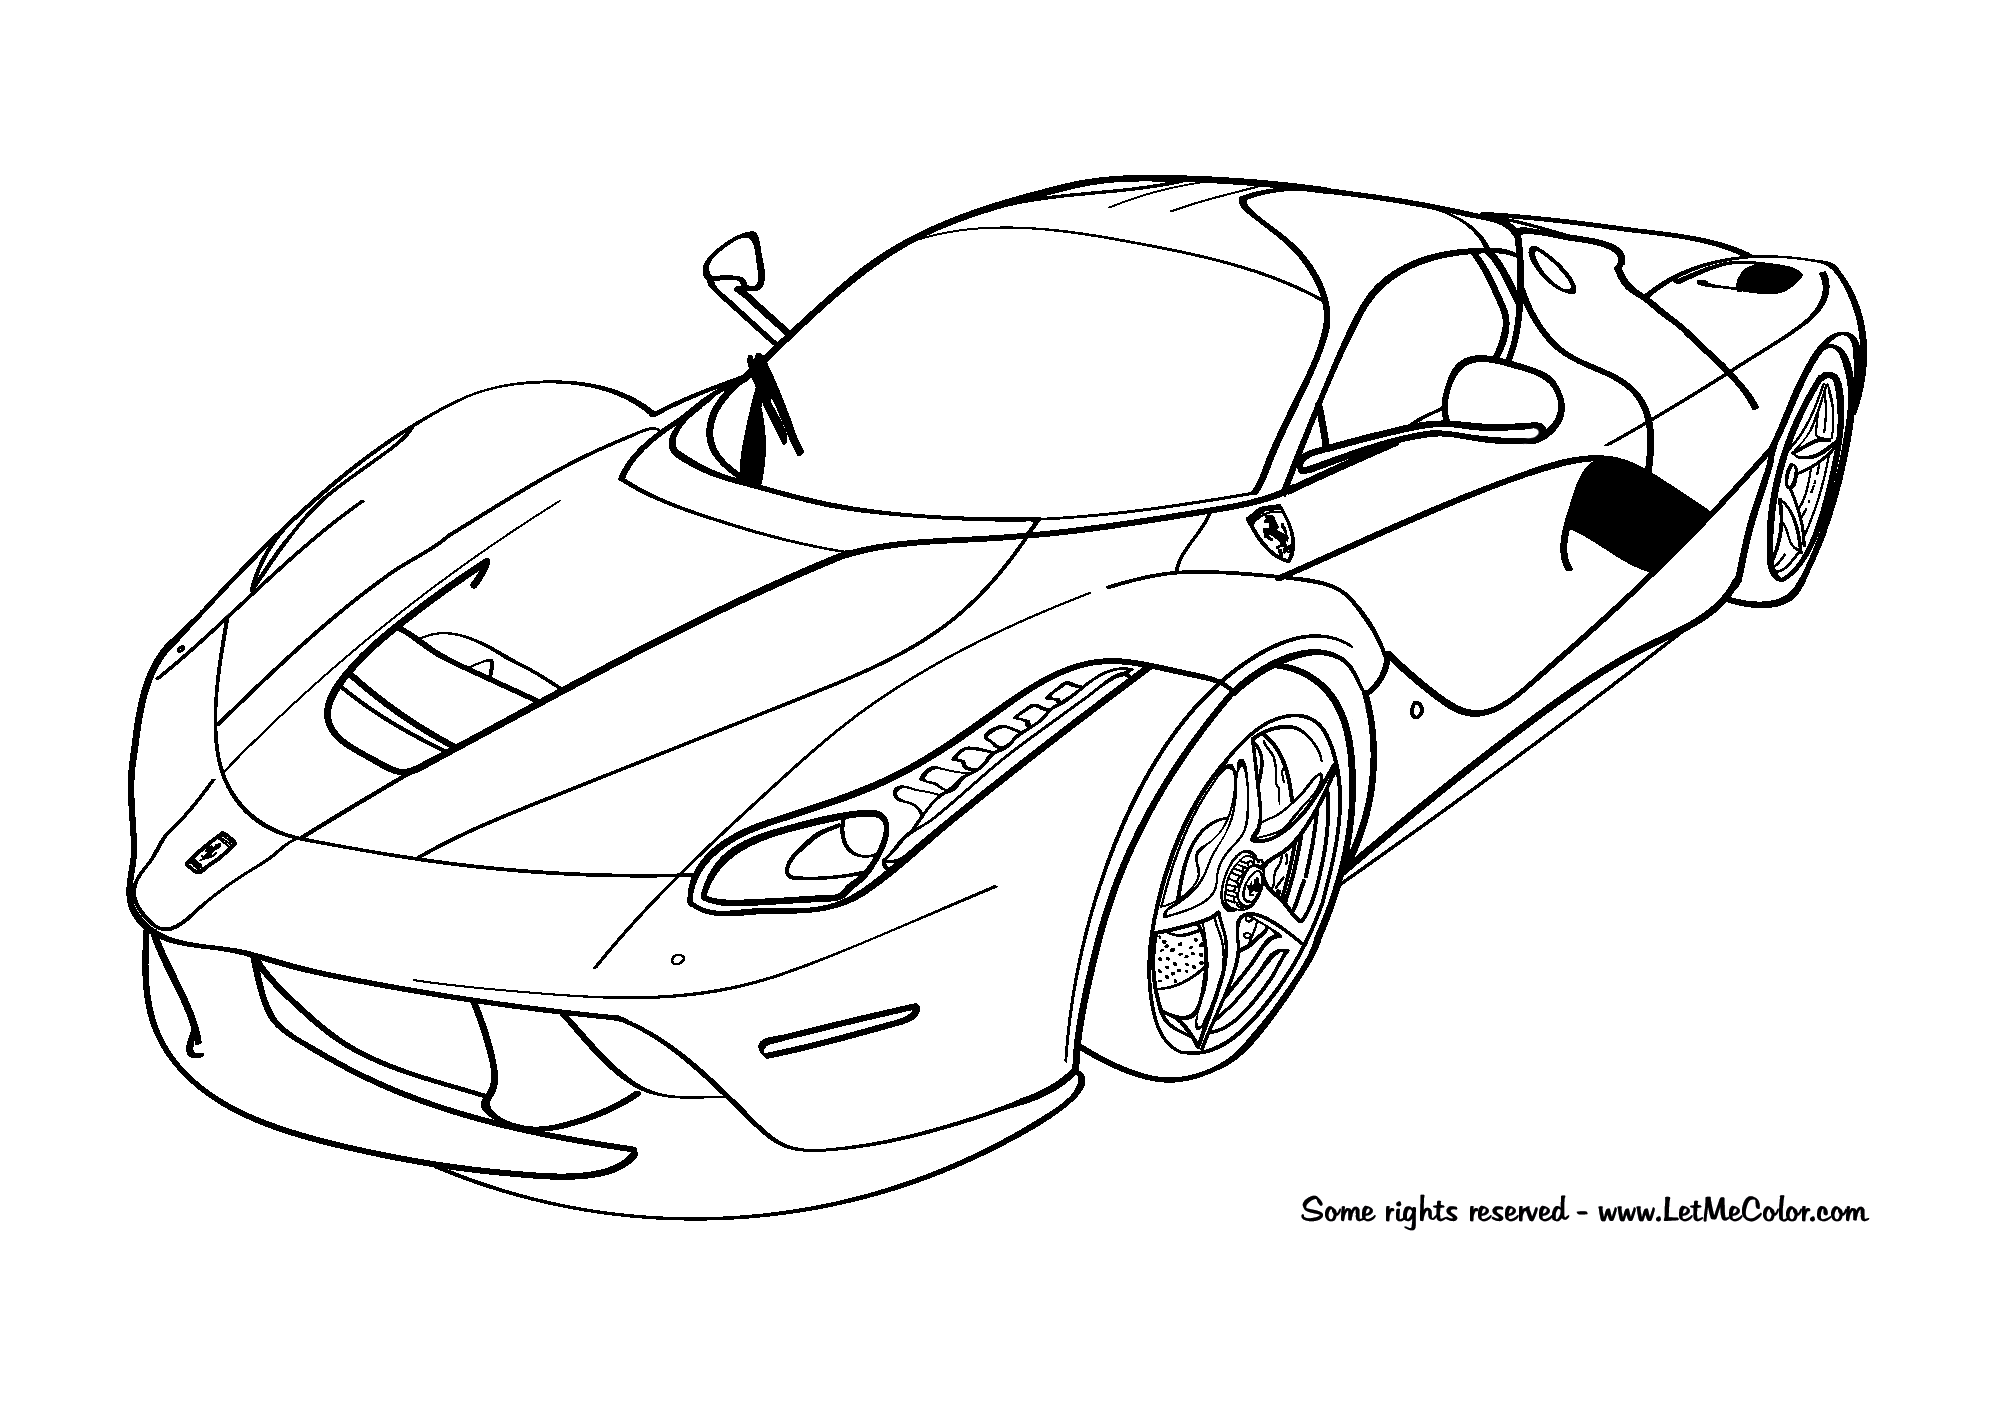 coloring pictures of cars car coloring pages free download coloring of pictures cars